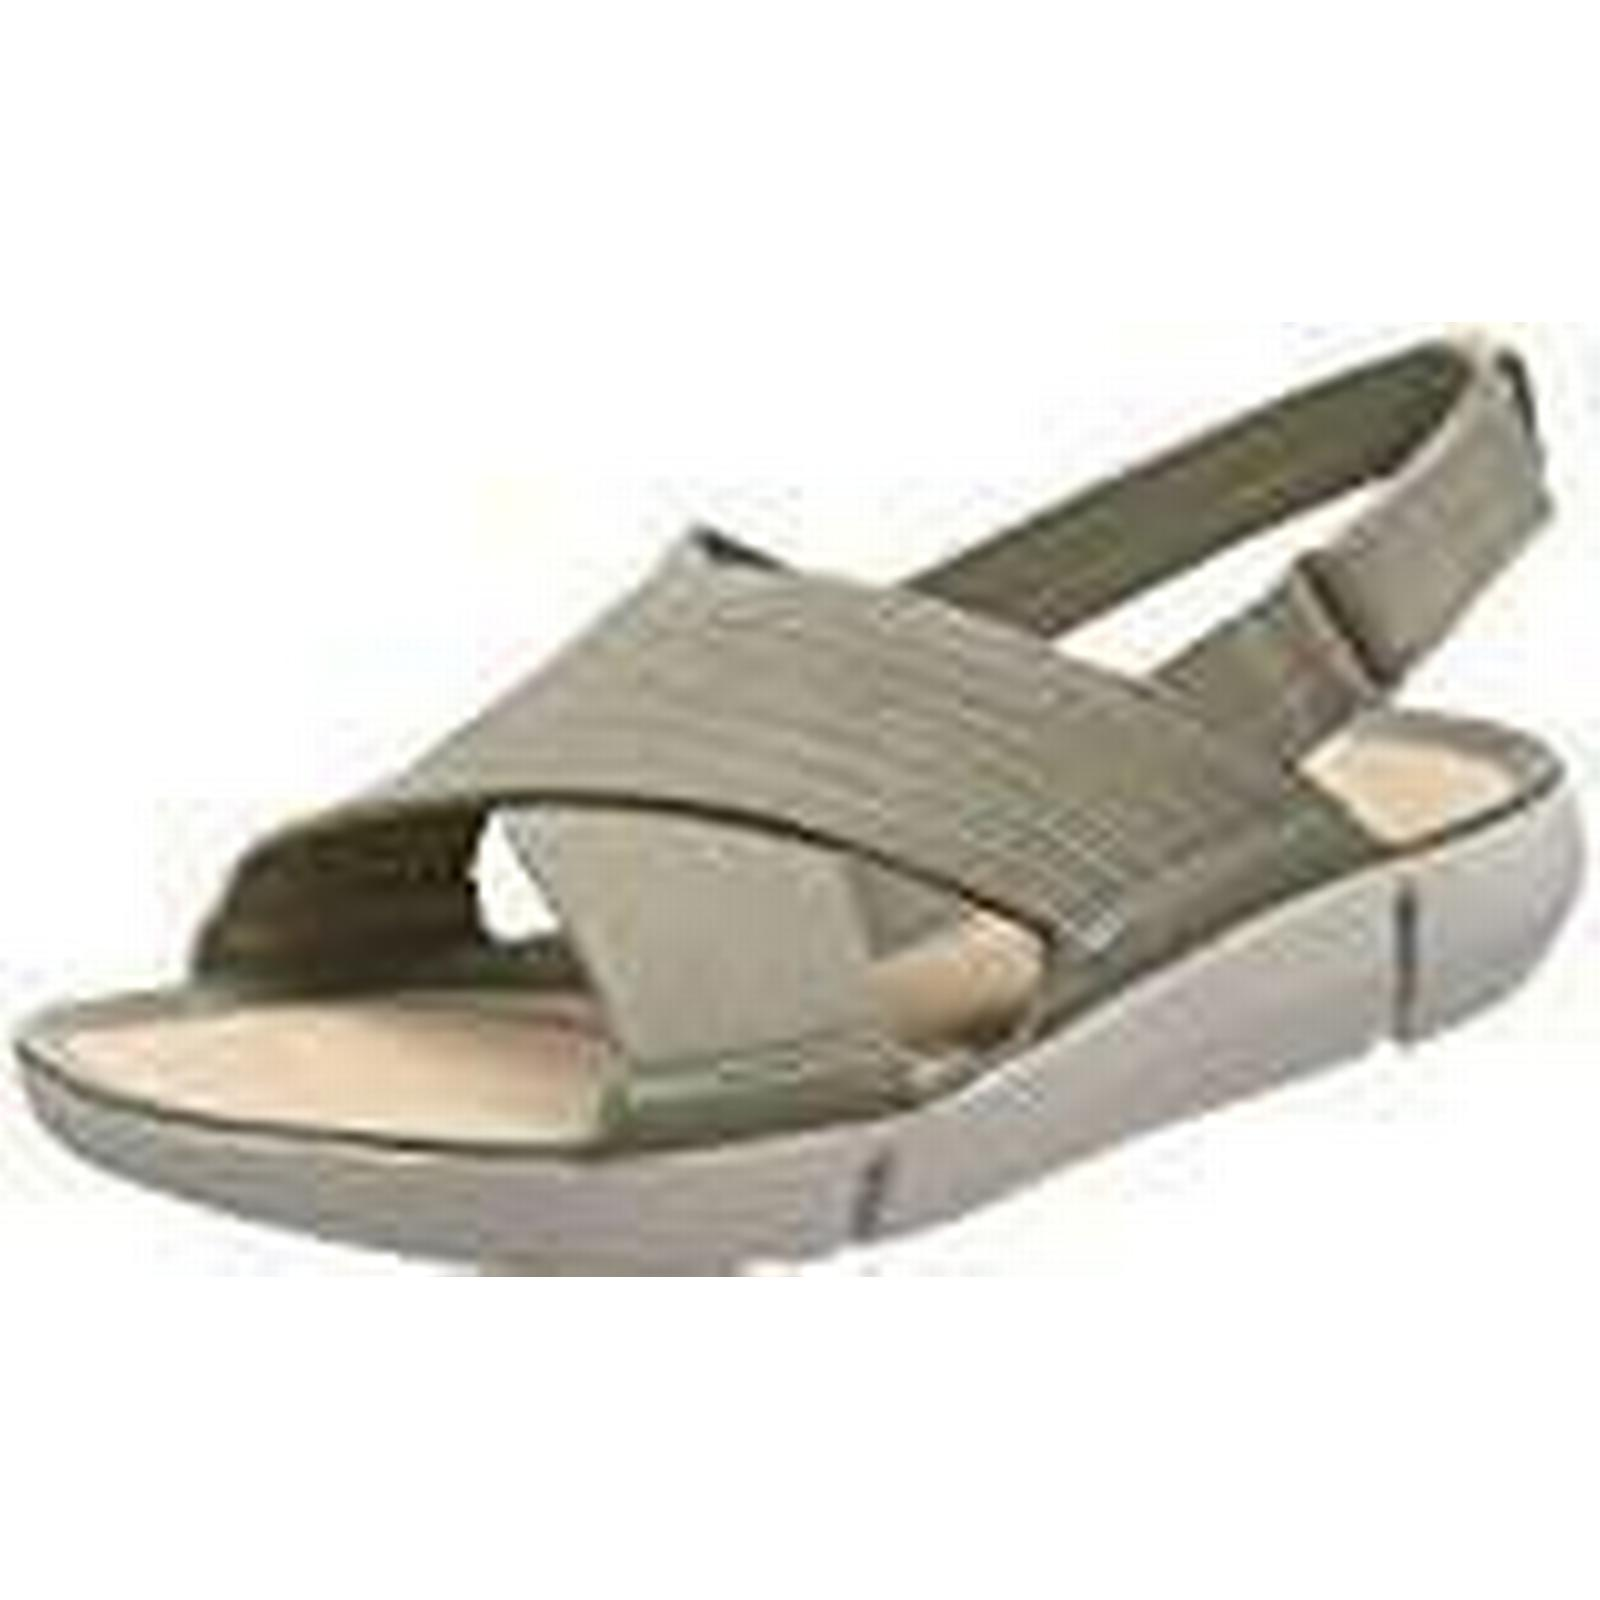 Clarks Women''s Tri Chloe 7.5 Sling Back Sandals, (Light Green), 7.5 Chloe UK 8d9145